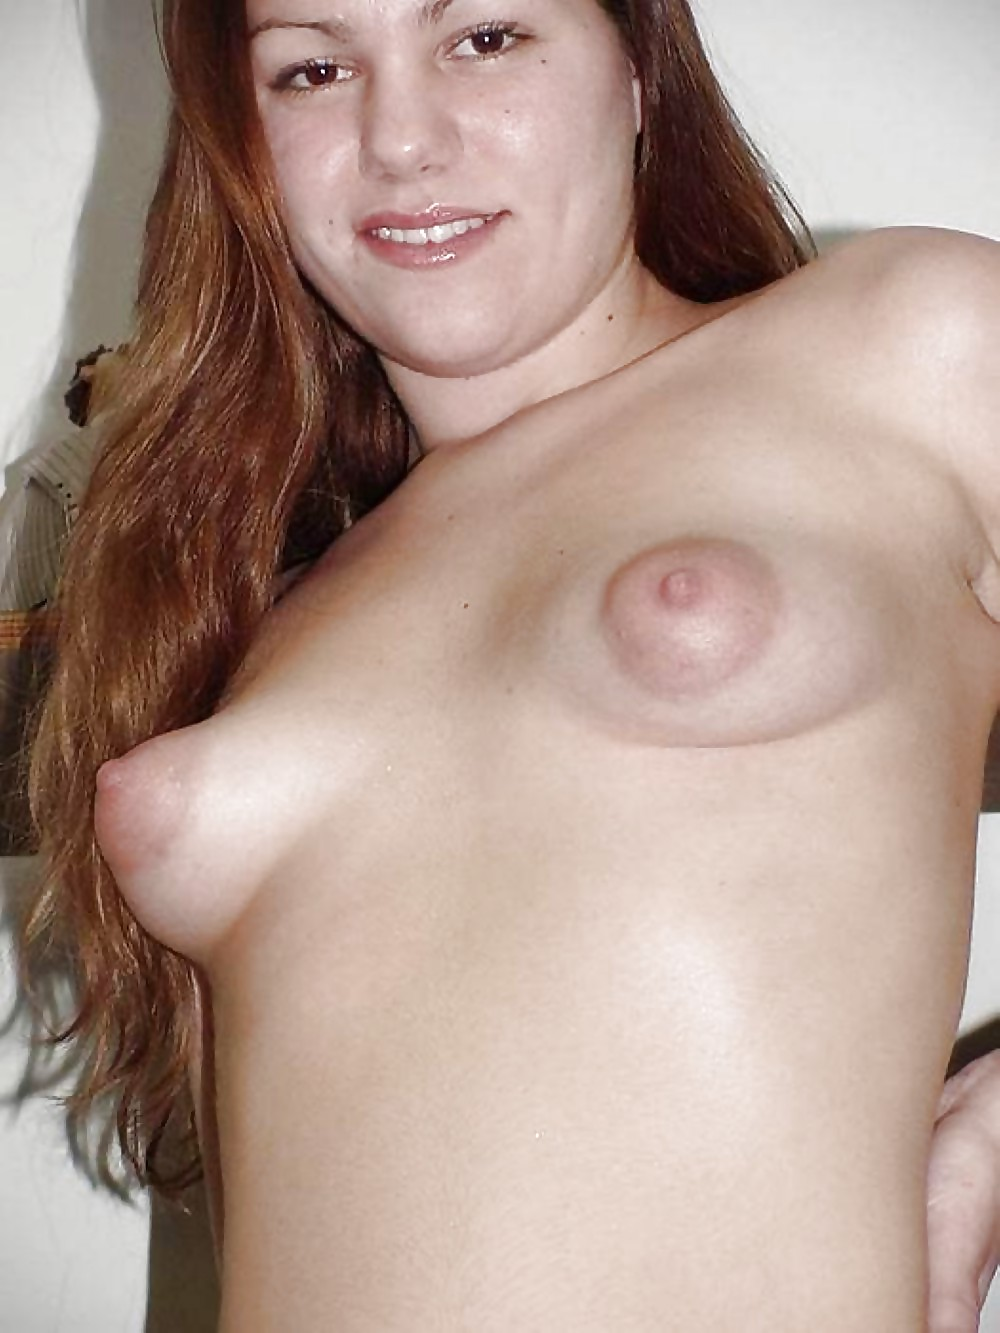 Very Perky Nipples